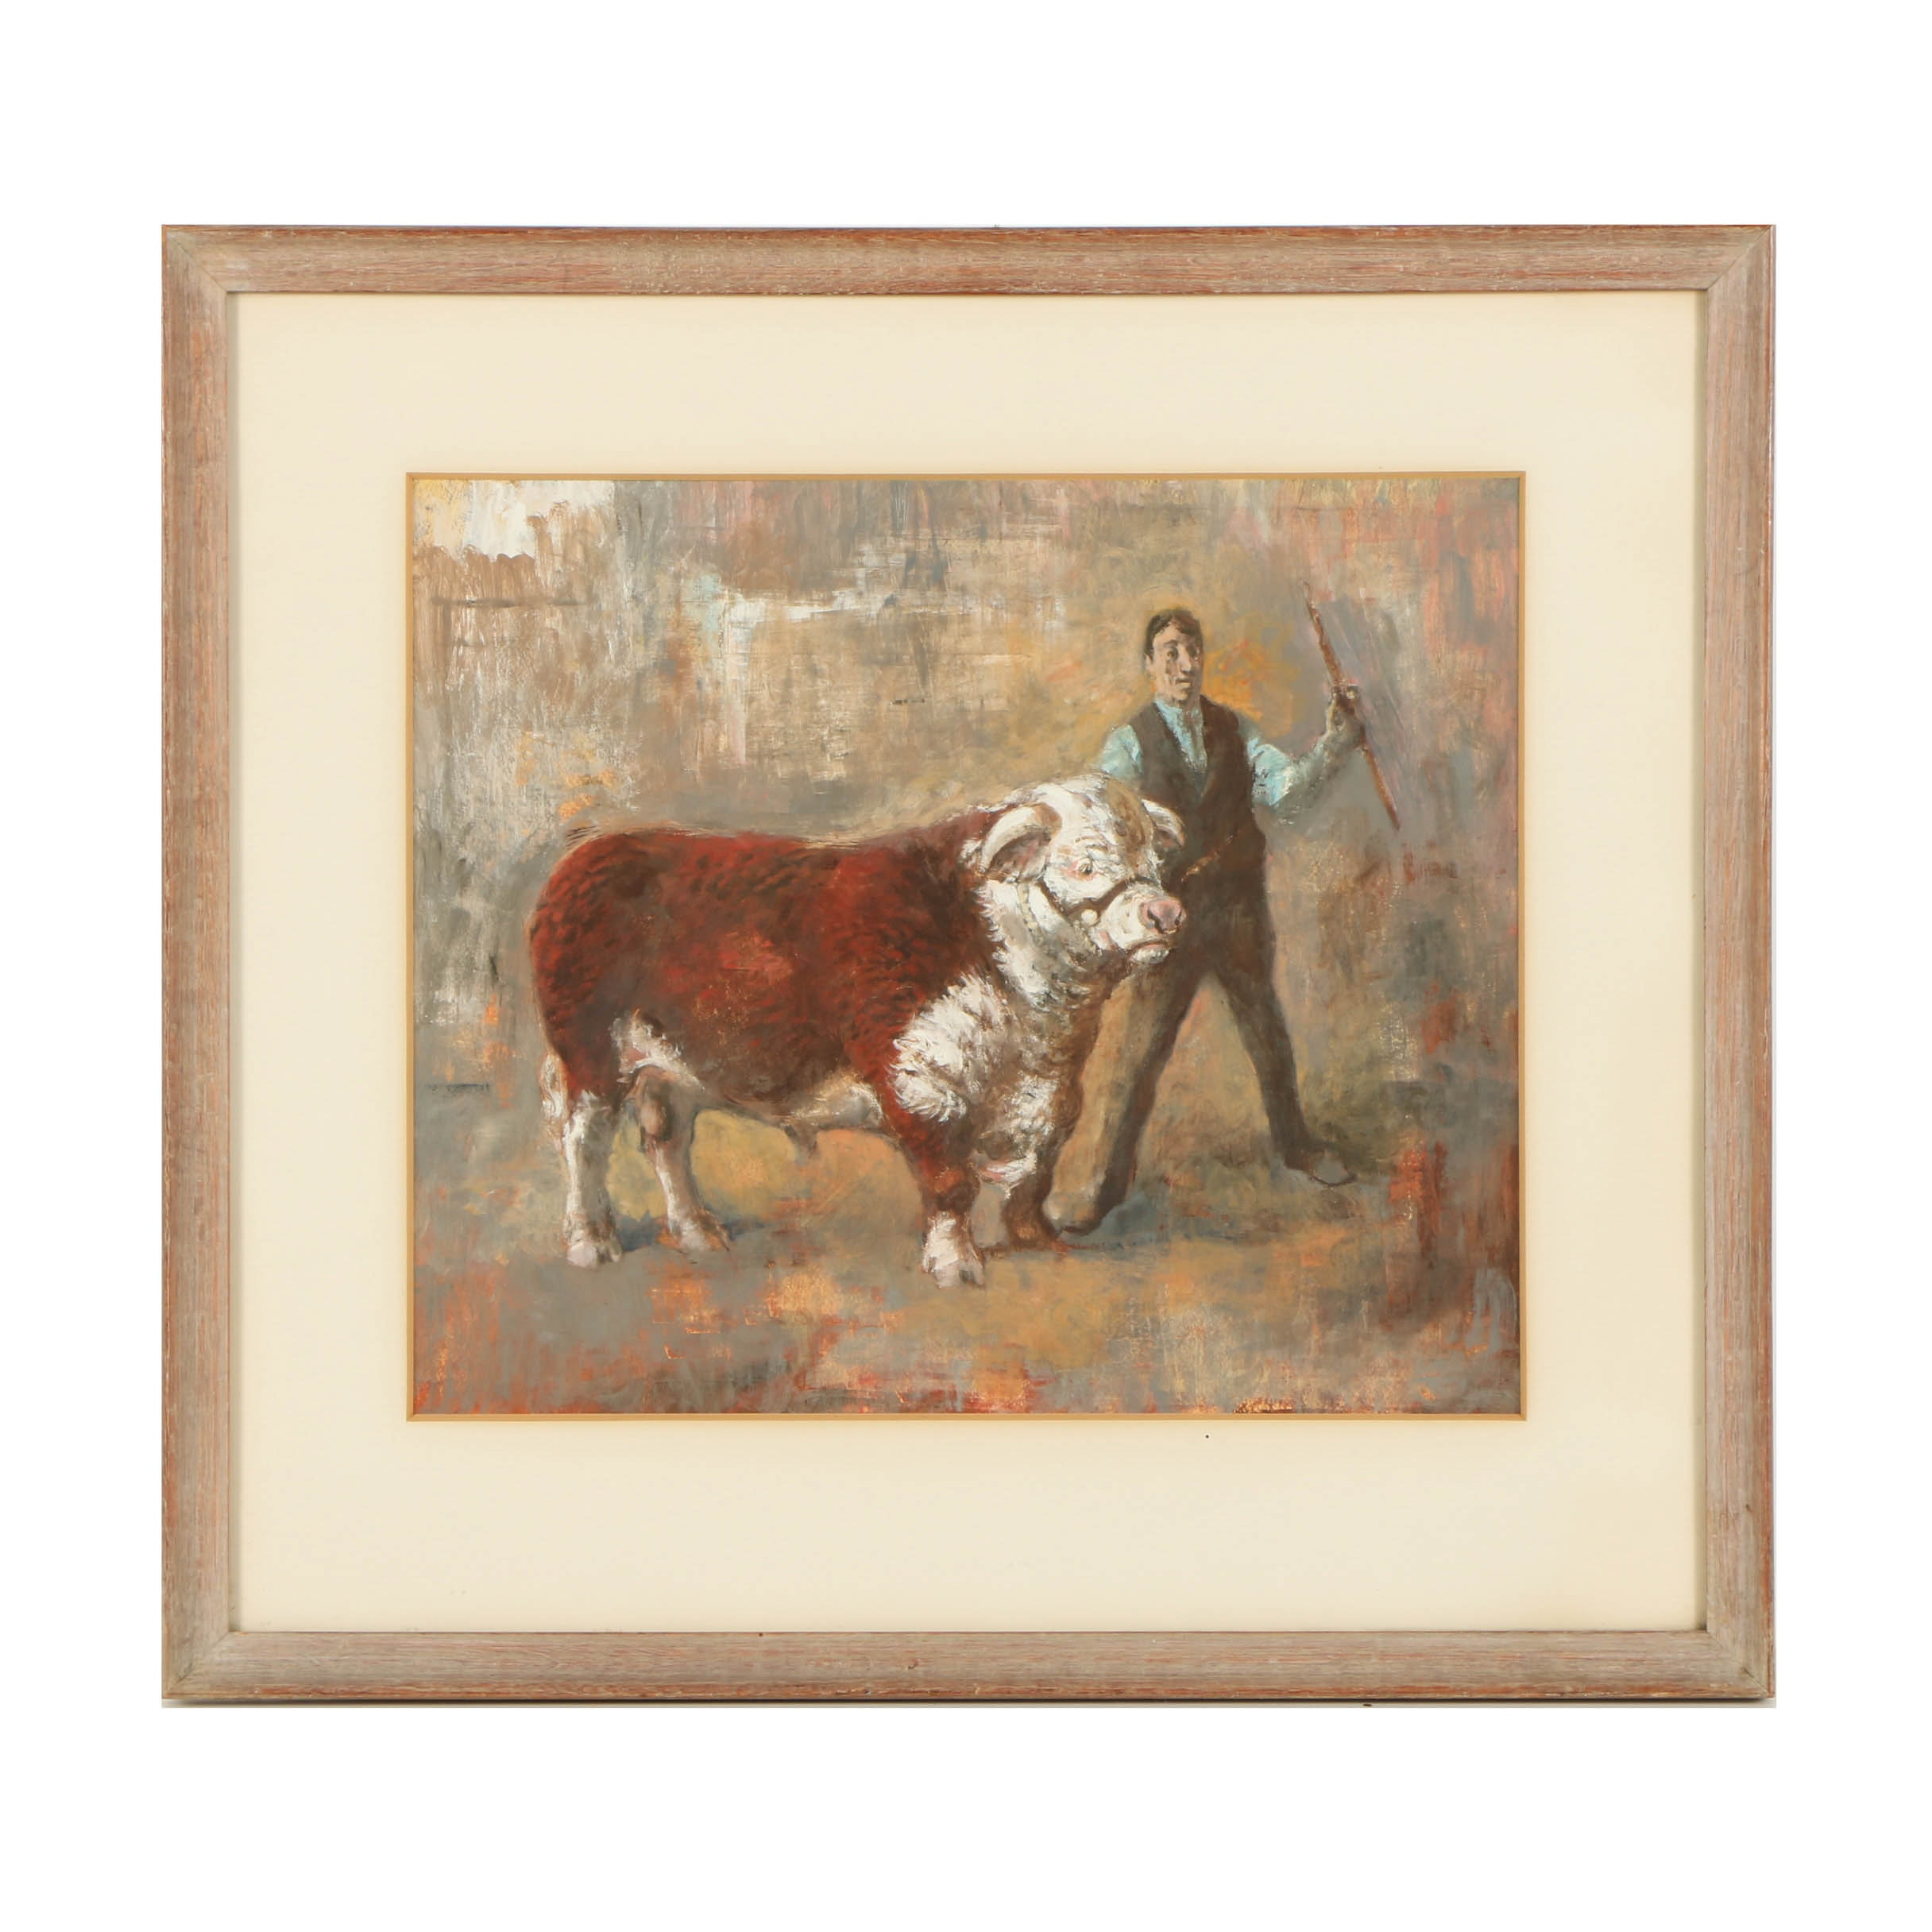 Mixed Media Painting on Paper of a Man and Cow